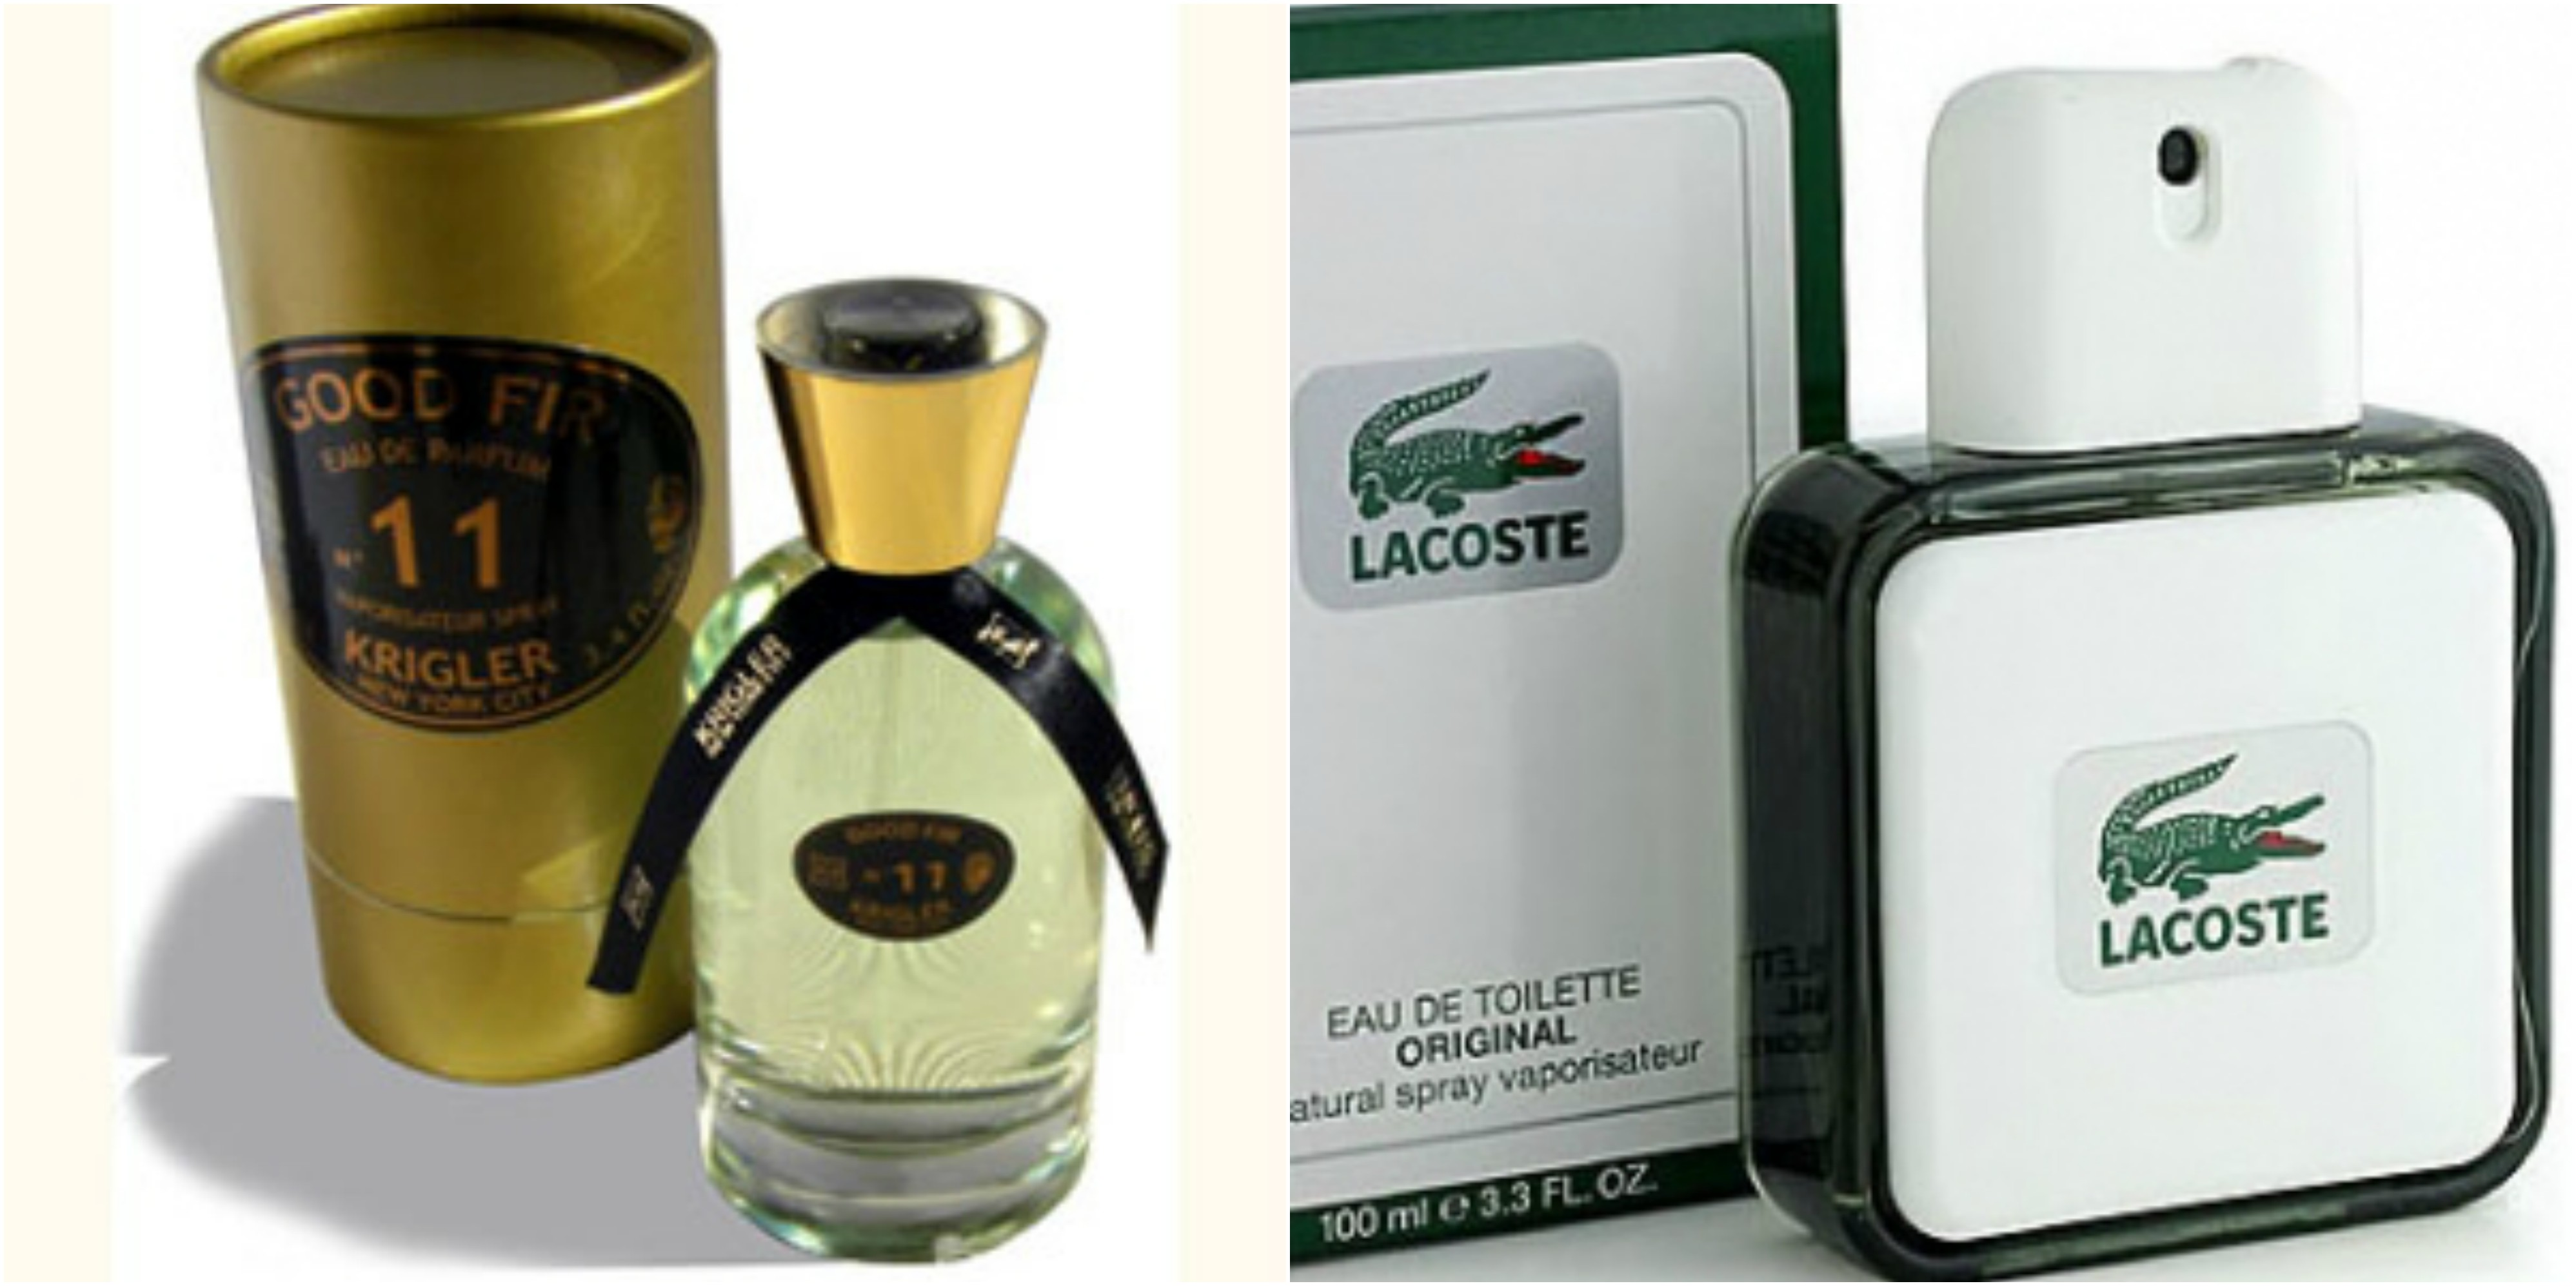 8bb3c43ee Flacons of Krigler Good Fir 11 and Lacoste Lacoste